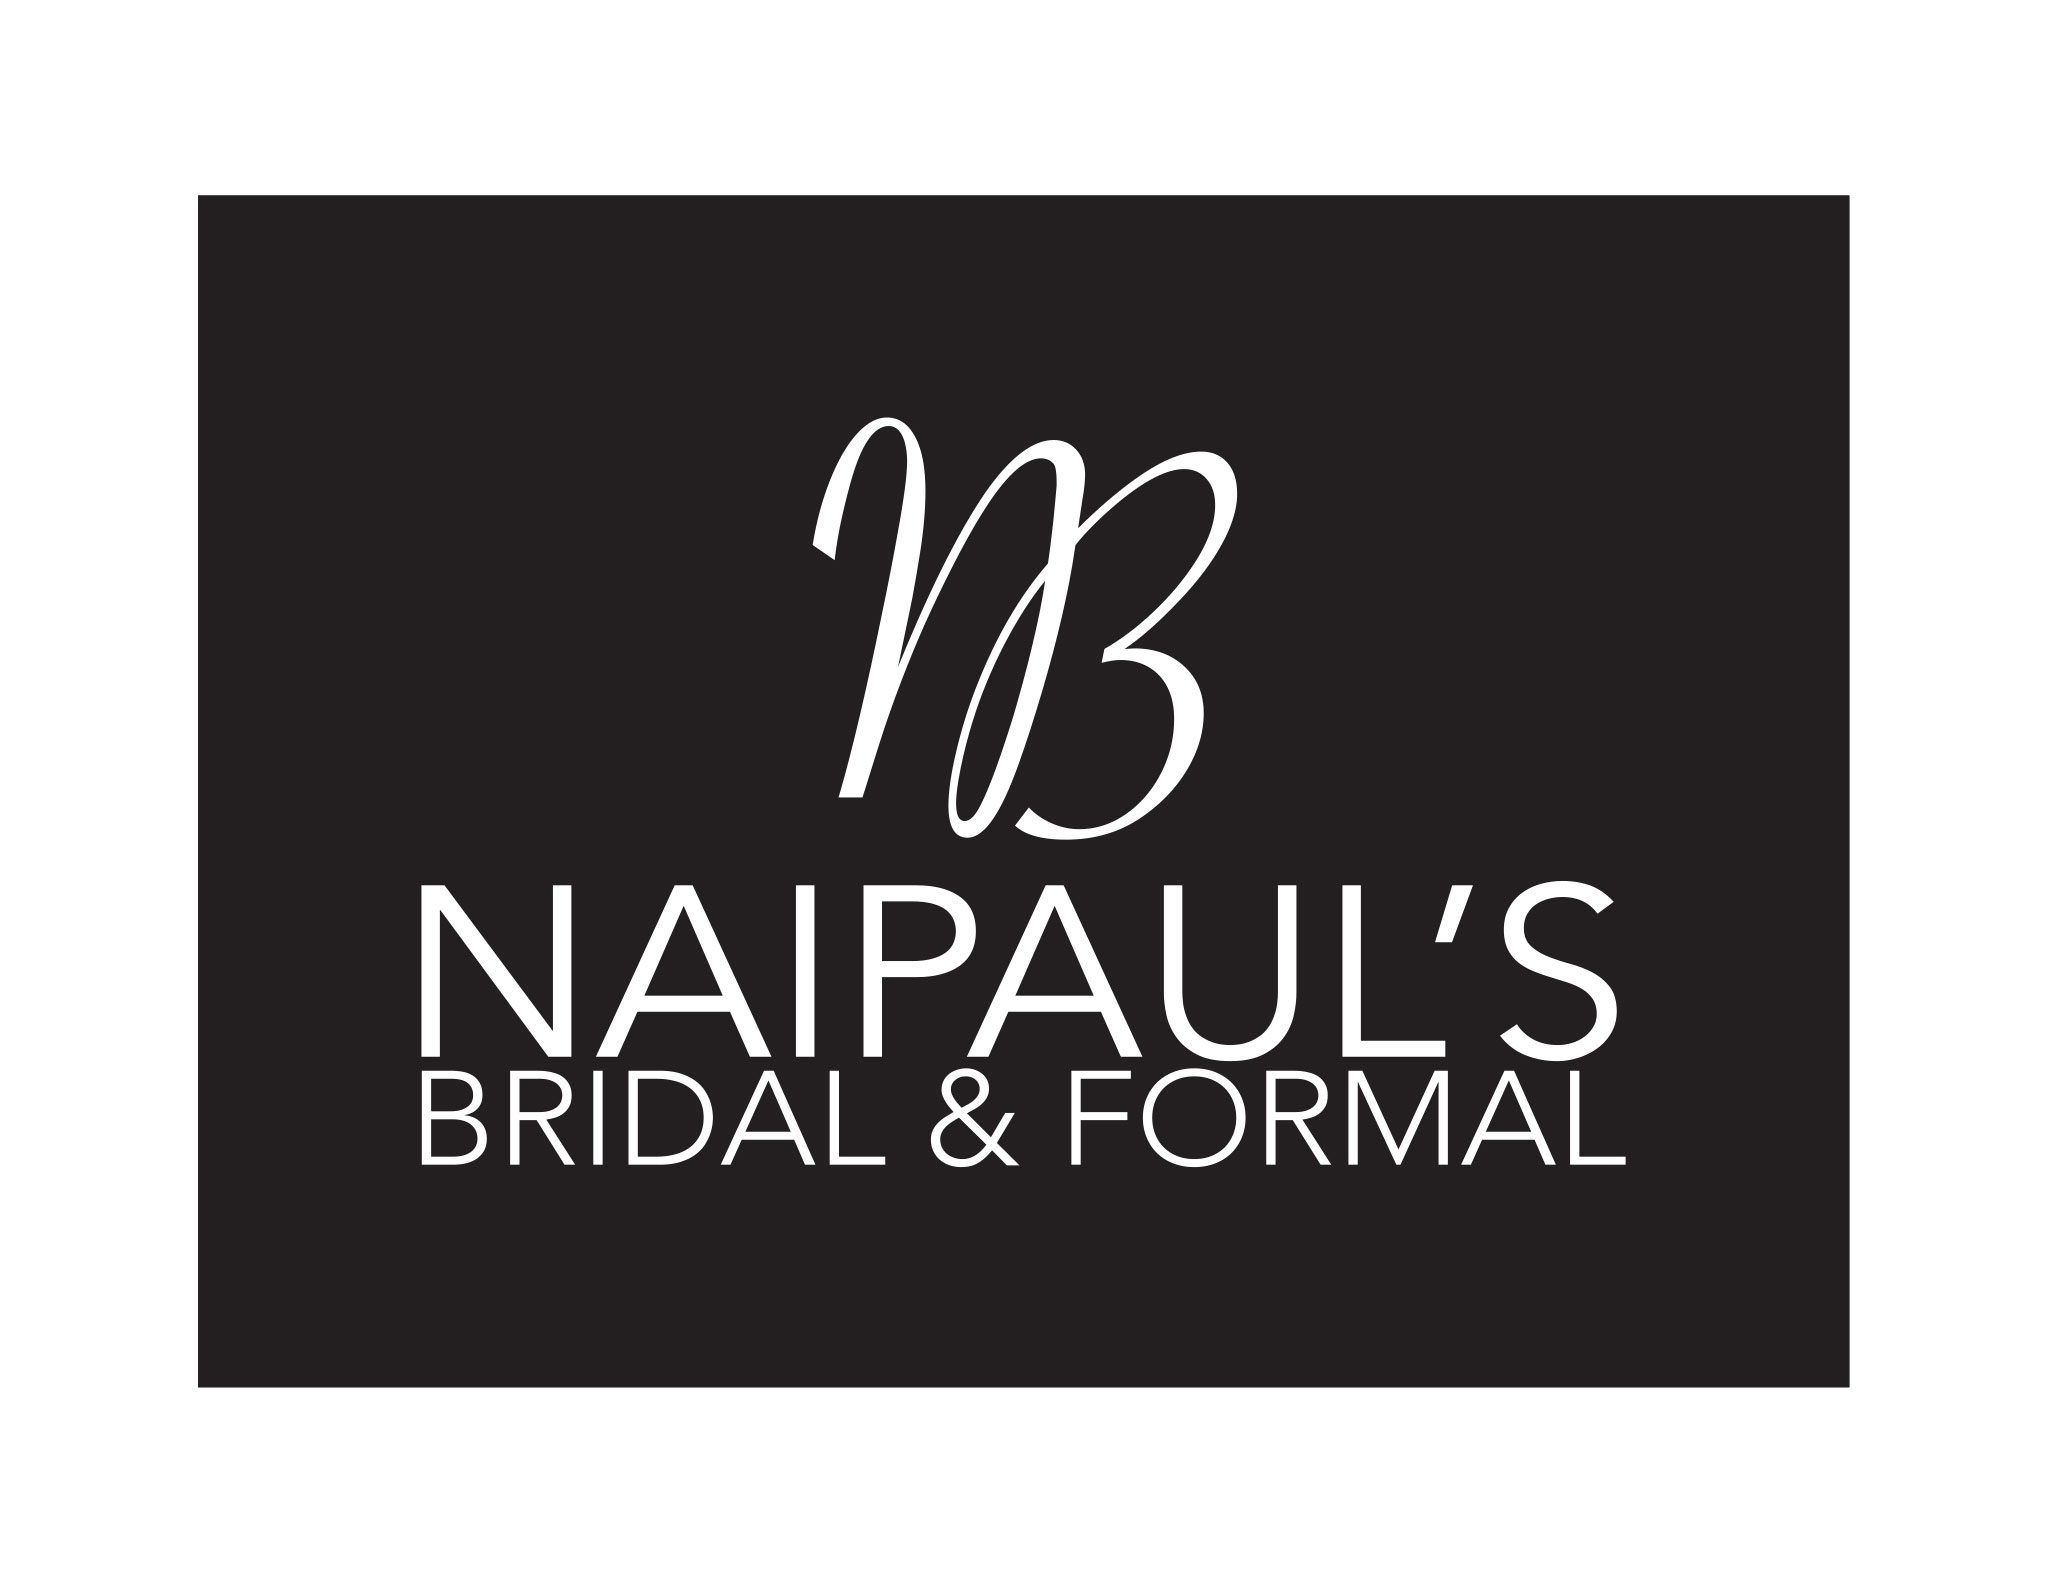 Naipaul's Bridal & Formal - Logo